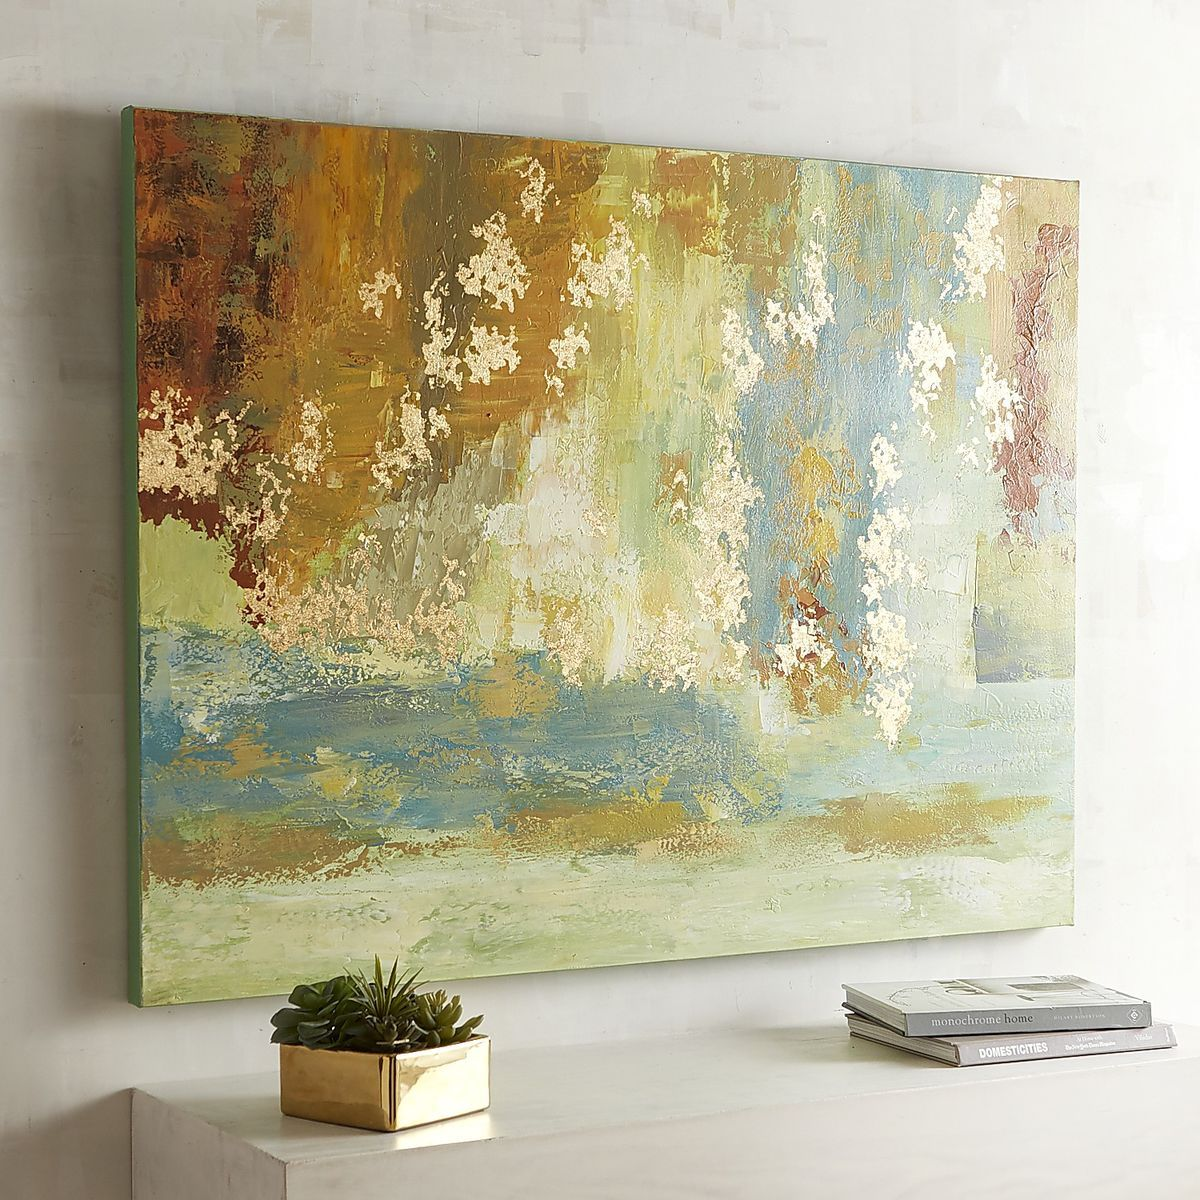 Pier 1 Imports Implicit Abstract Art   Paintings, Dancing and Artwork